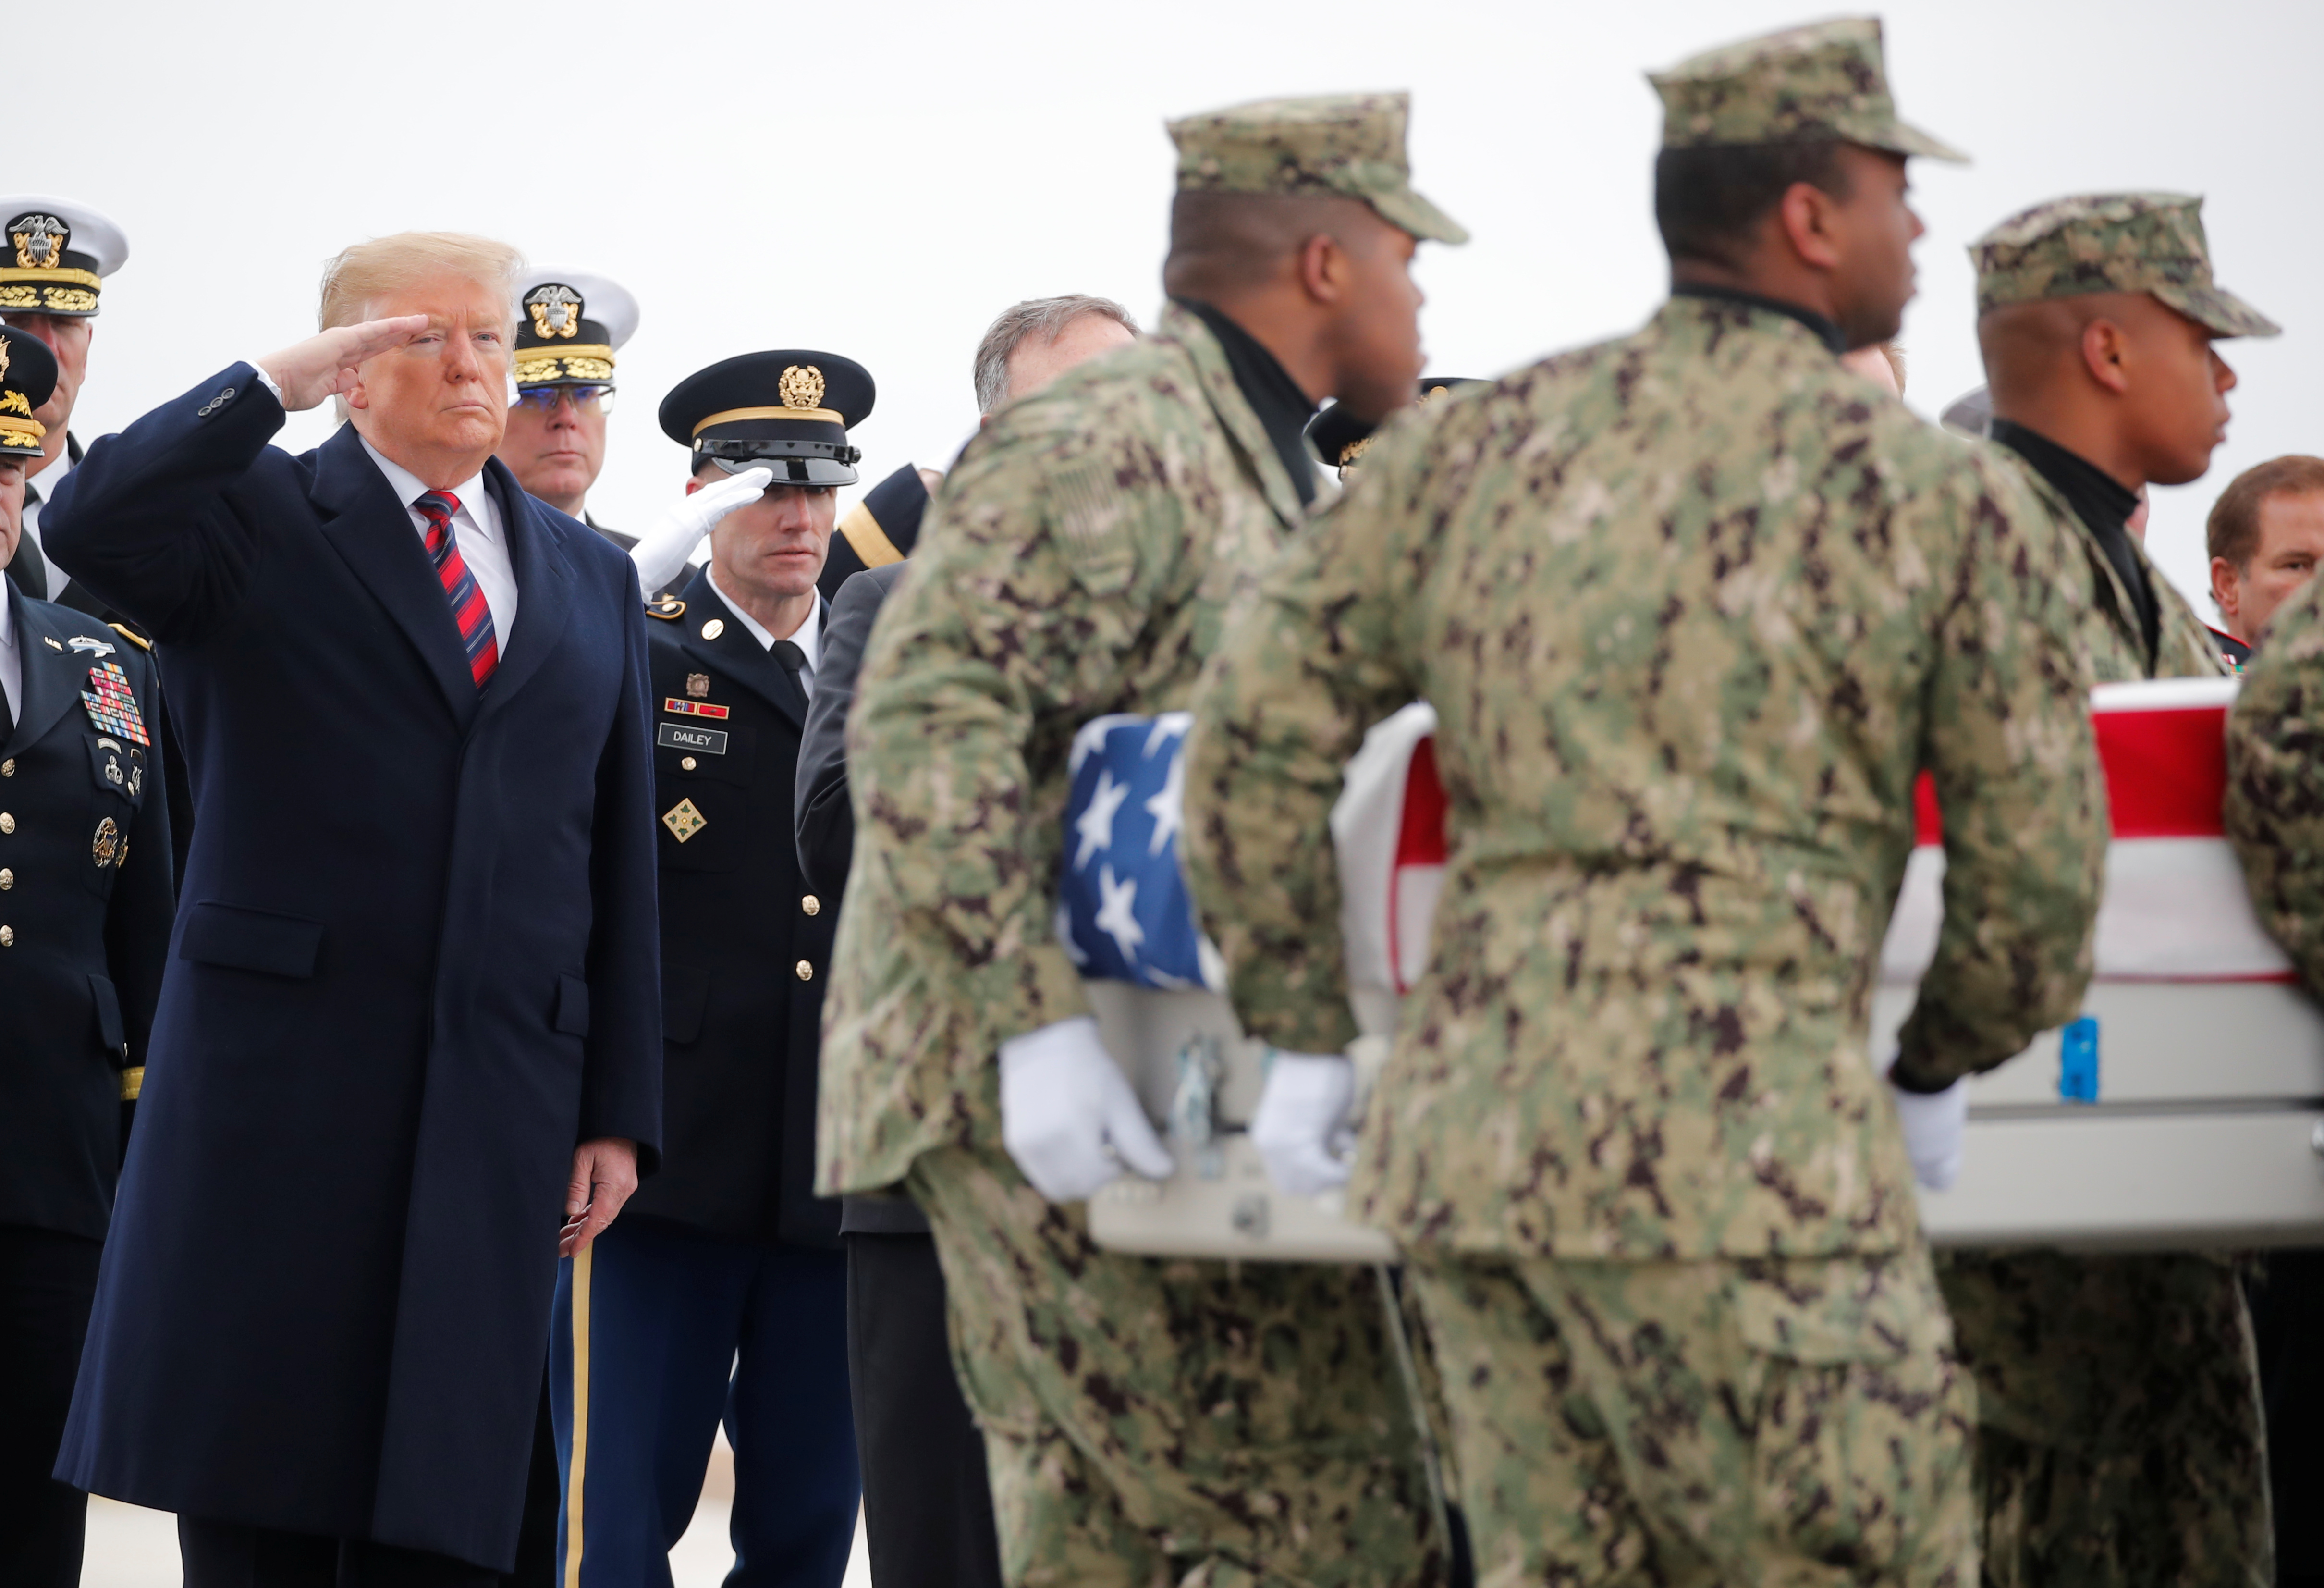 President Donald Trump salutes as a military honor guard carries the remains of Scott Wirtz, a civilian employee of the U.S. Defense Intelligence Agency killed along with three members of the U.S. military during a recent attack in Syria, past during a dignified transfer ceremony at Dover Air Force Base, in Dover, Delaware, U.S., January 19, 2019. REUTERS/Carlos Barria